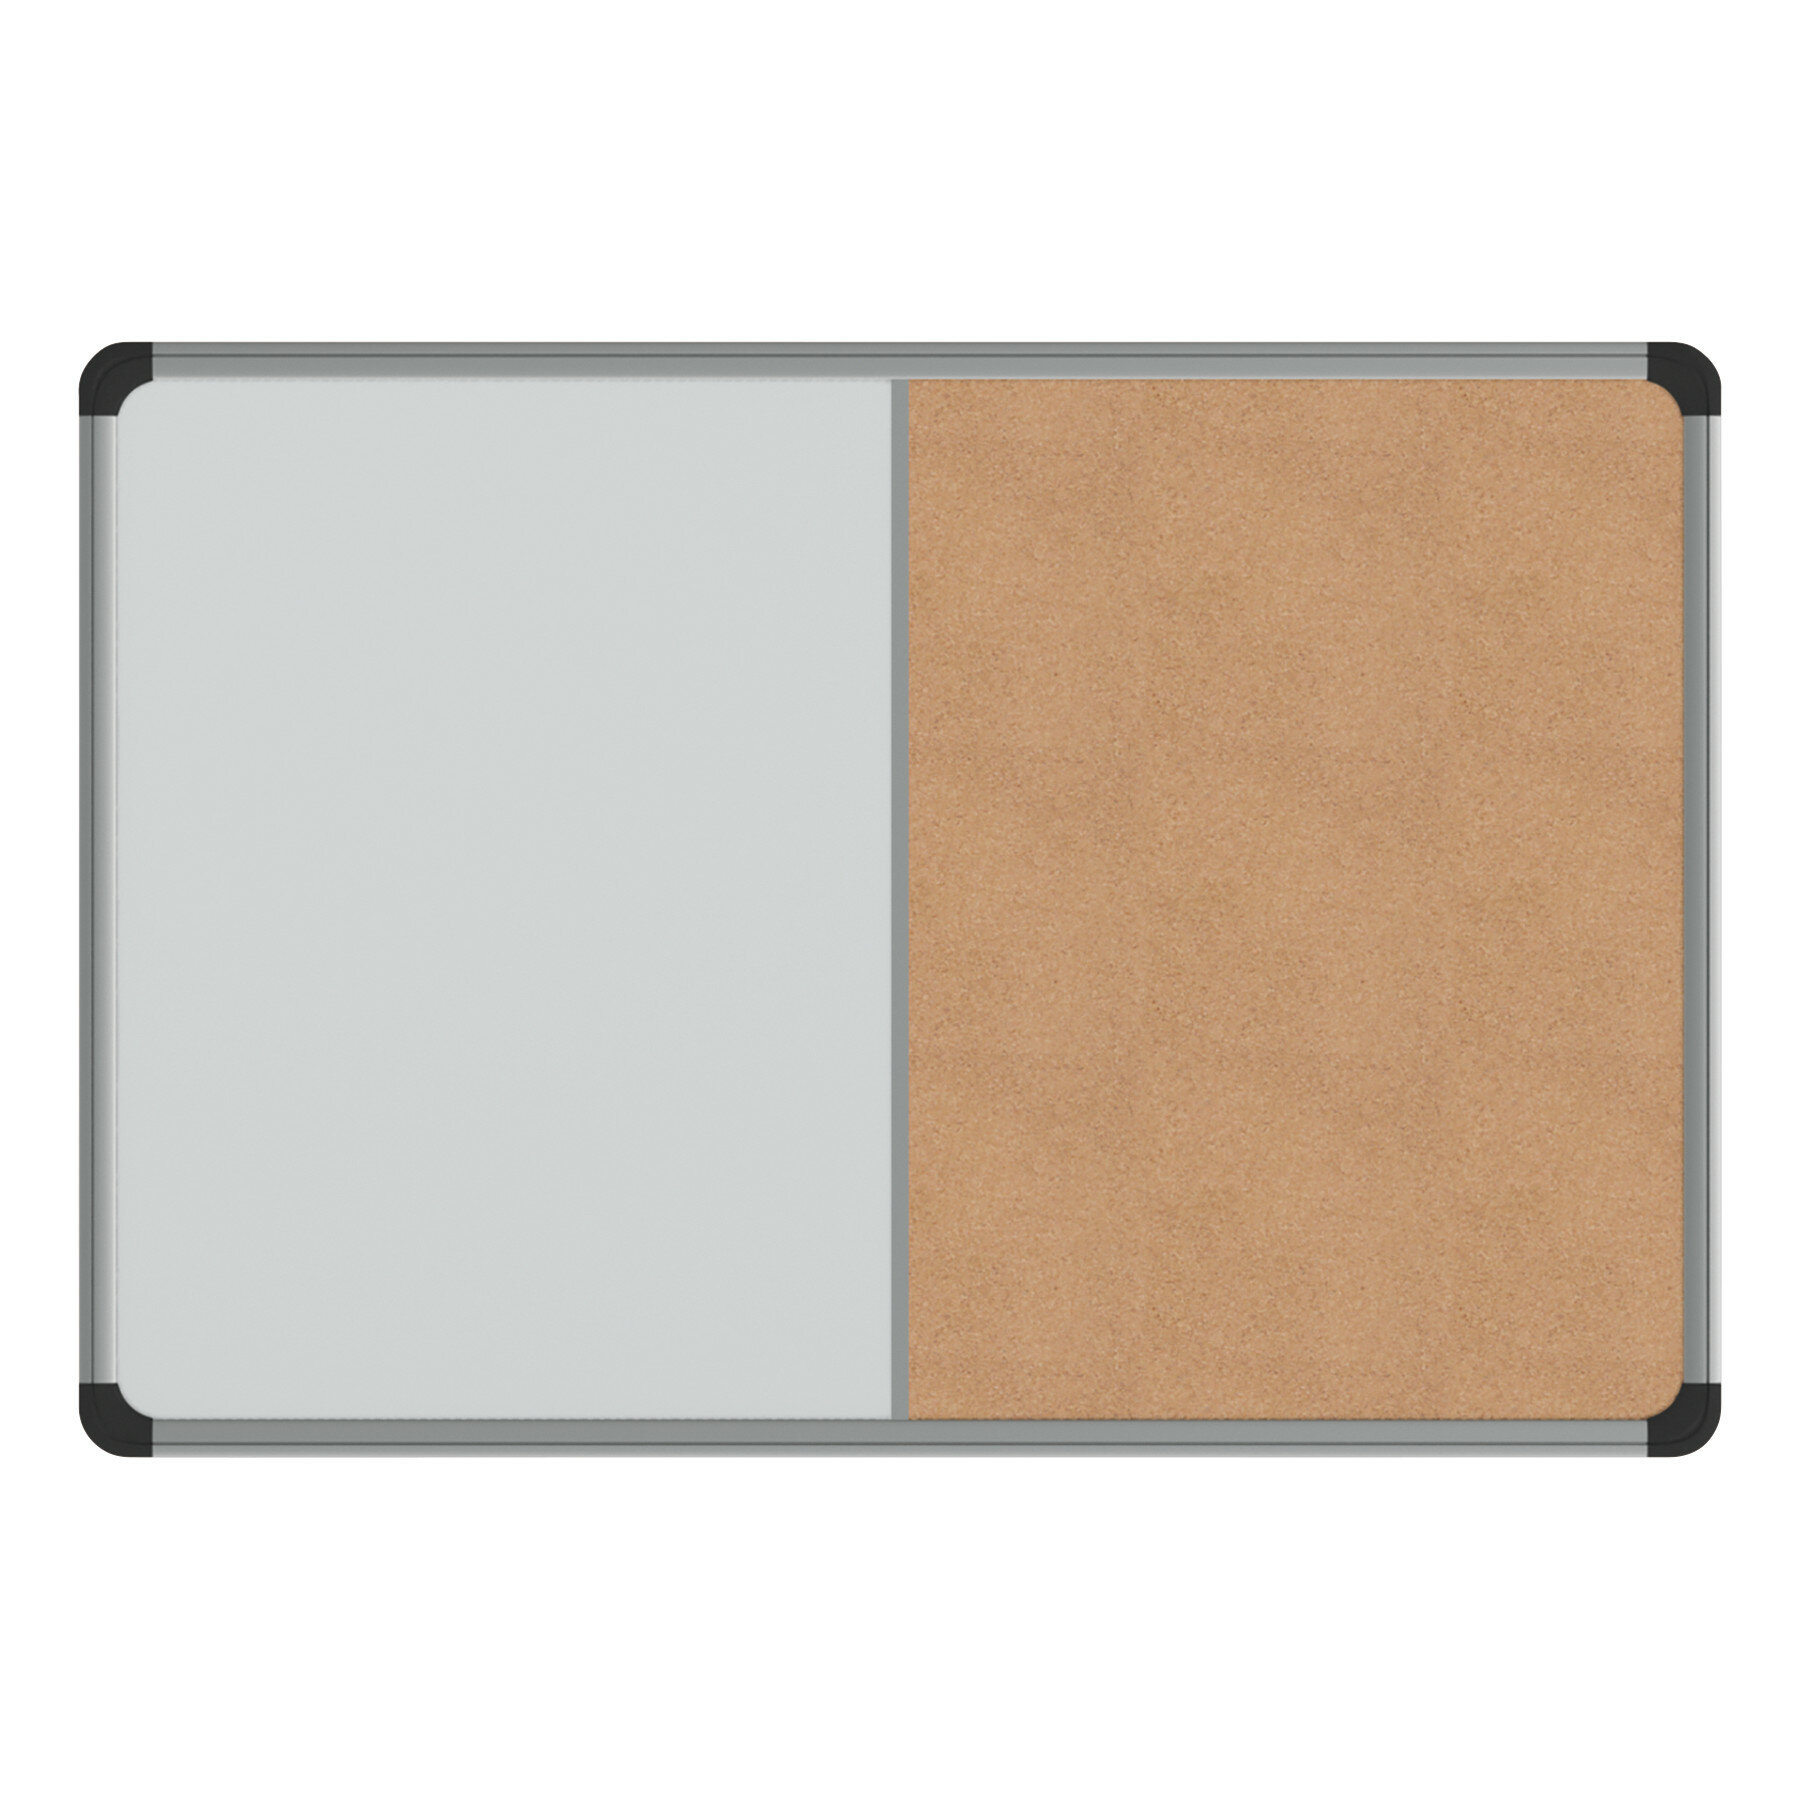 Symple Stuff Magnetic Wall Mounted Combo Board Reviews Wayfair